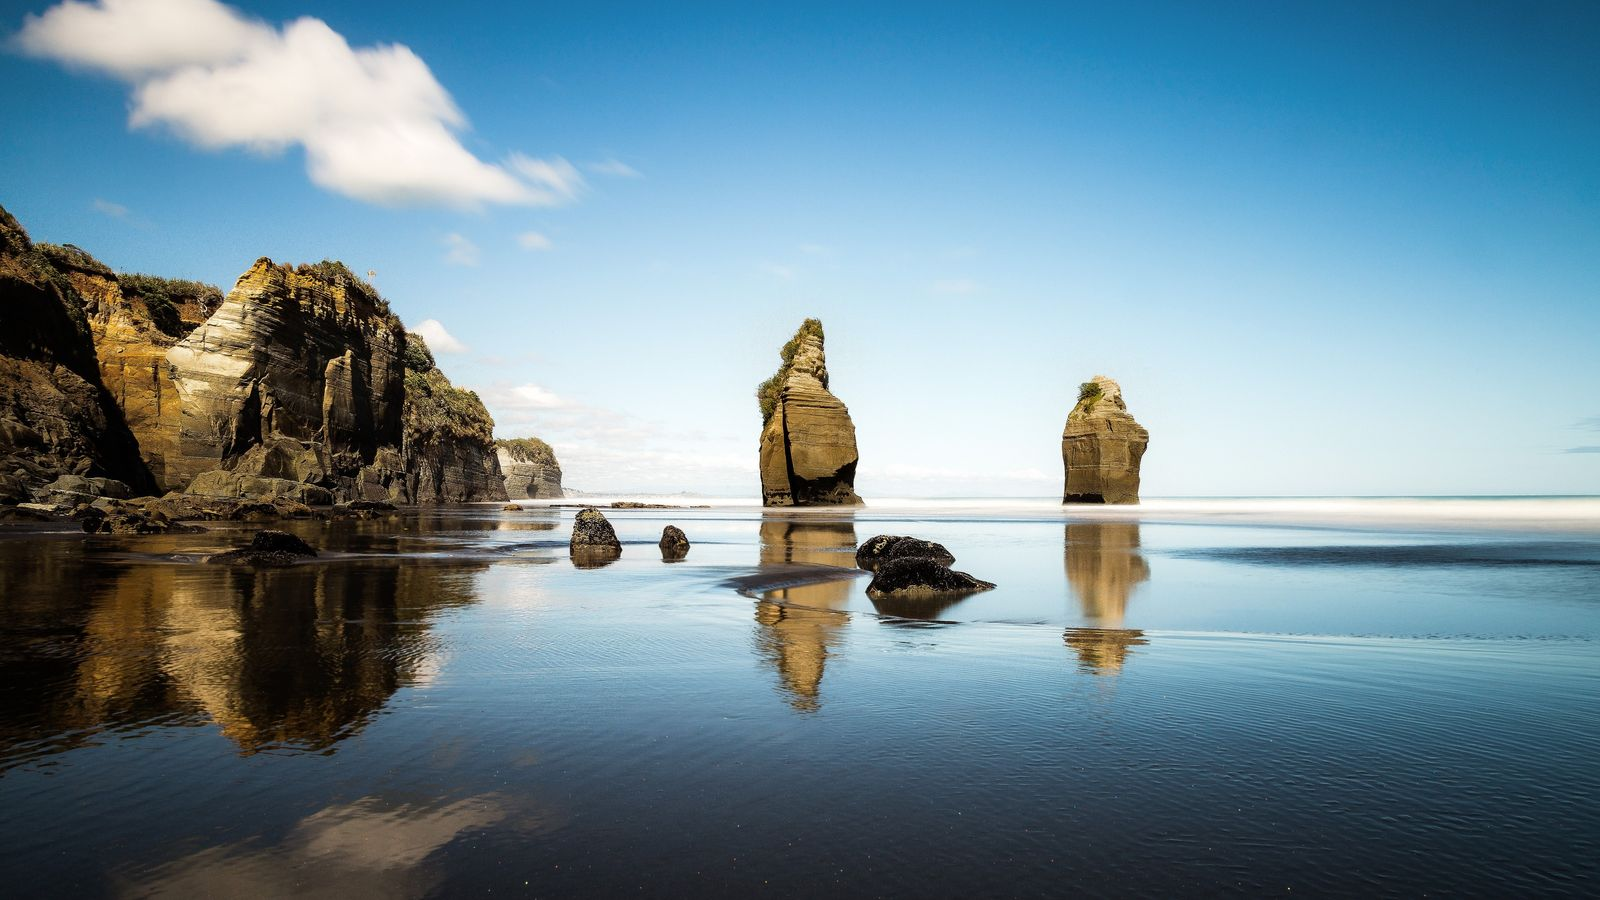 2015 - Paysage - The Three Sisters, Australie Boitier : Canon 6D Objectif : Canon 24-105/f4 L IS ...